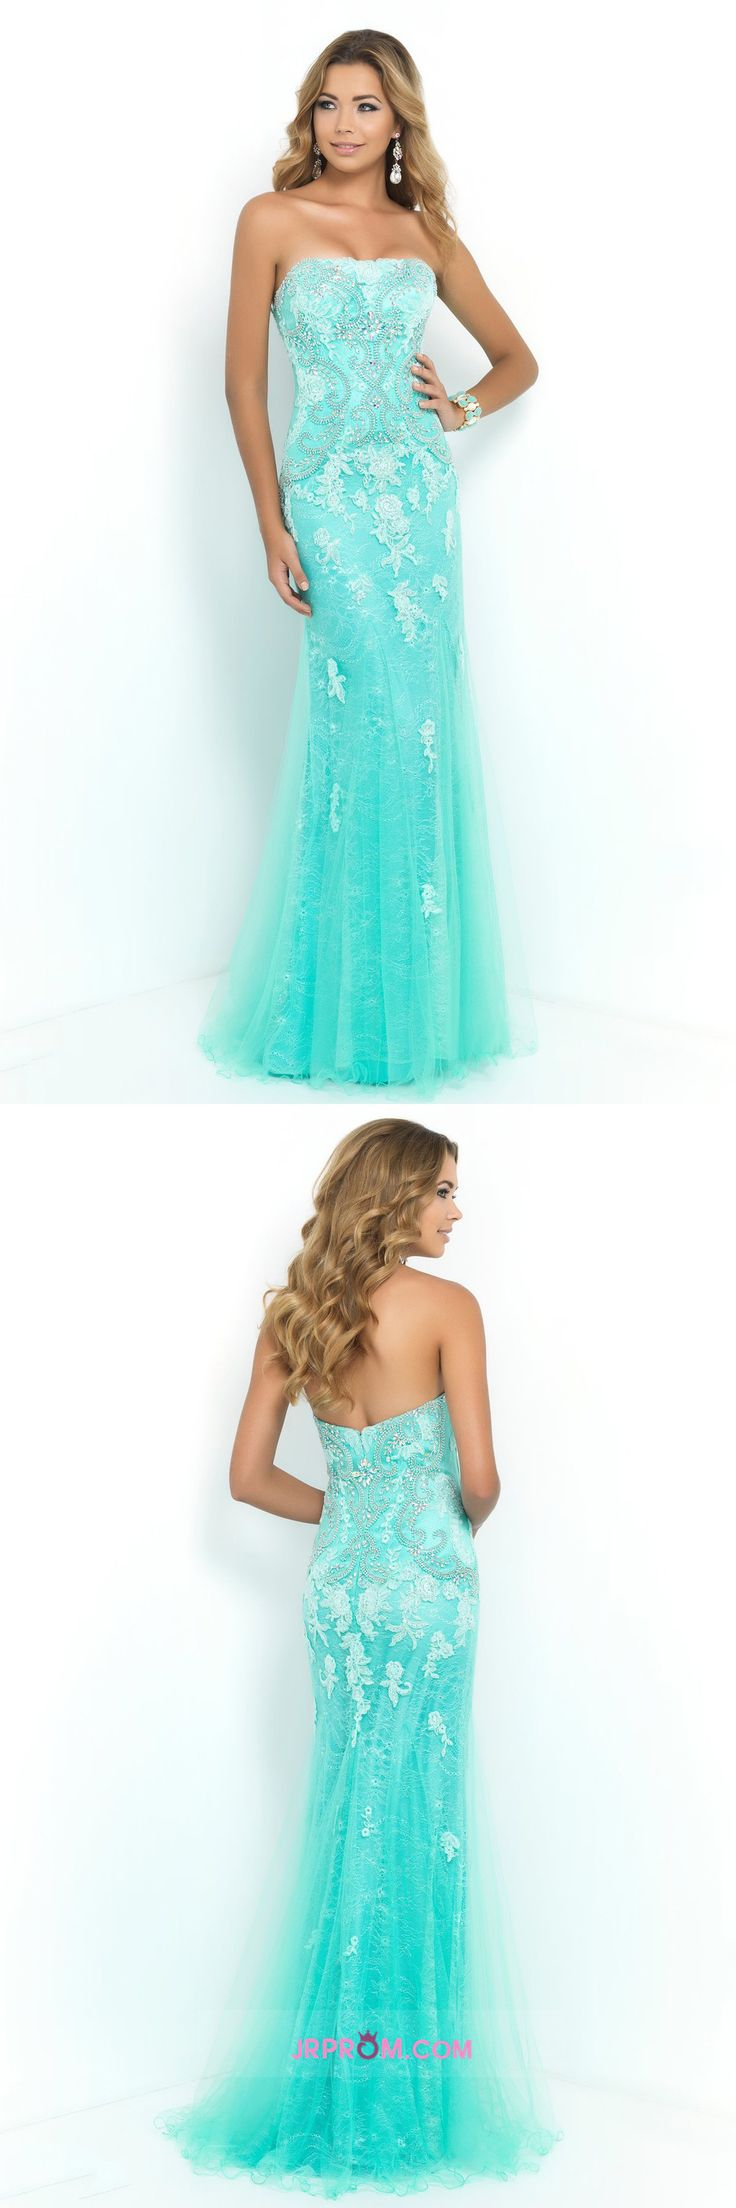 2016 Prom Dresses Strapless Column With Beading And Applique Item Code:#JRPSLE6R7R